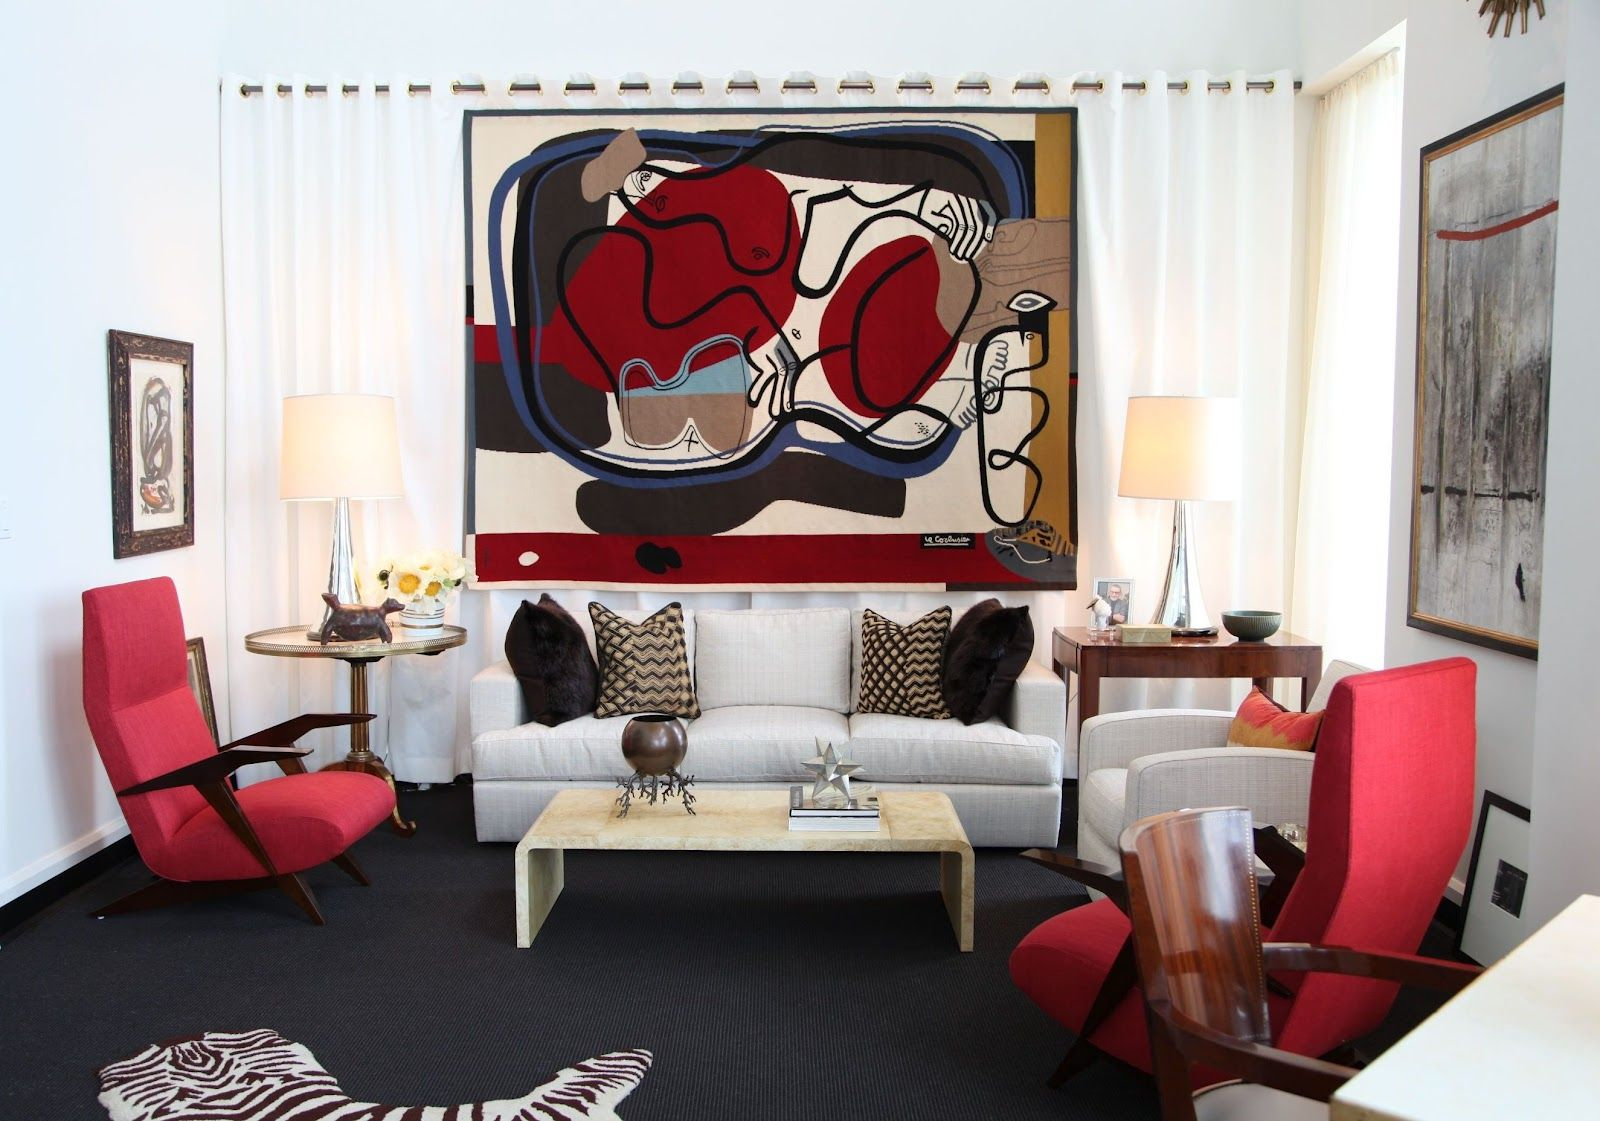 Red And Black Living Room Ideas As The Stunning Combination In 2020 White Living Room Decor Living Room Red Black And White Living Room Decor #red #black #white #living #room